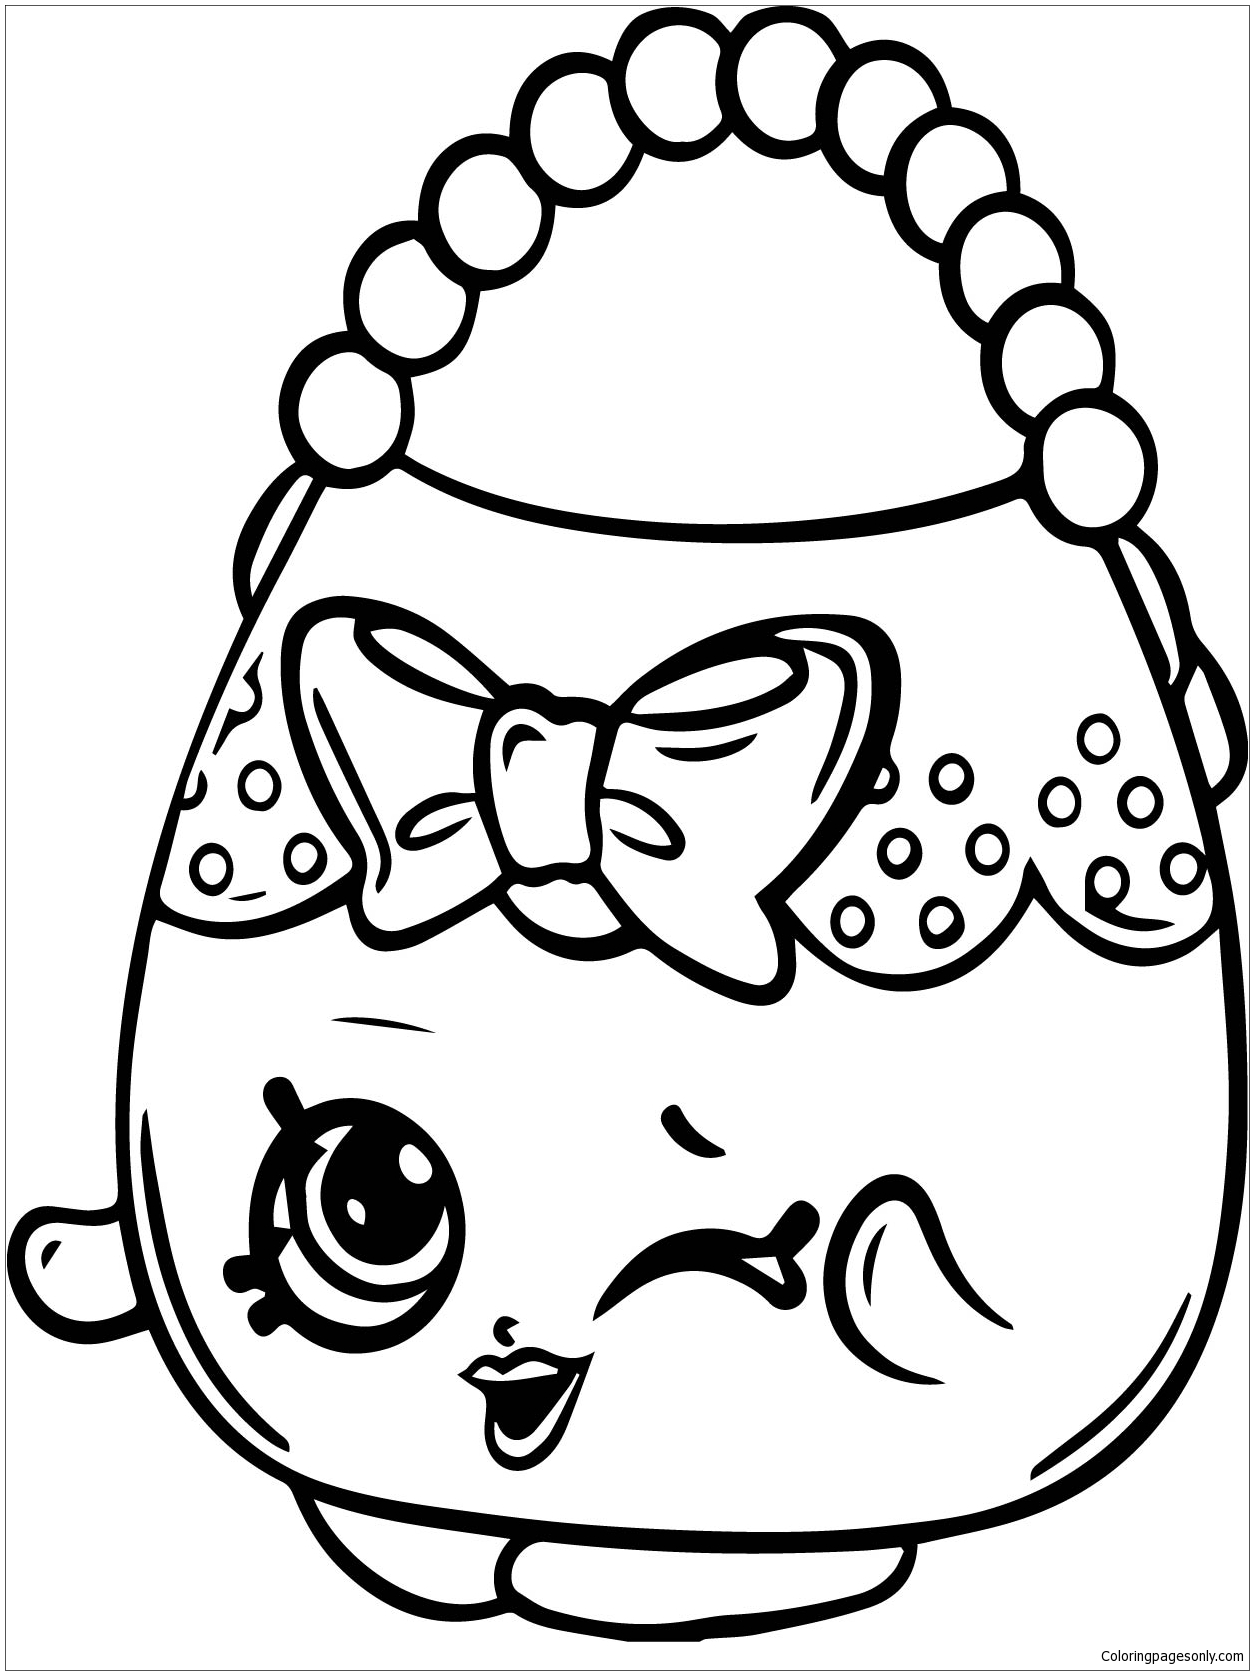 - Shopkins Handbag Coloring Page - Free Coloring Pages Online